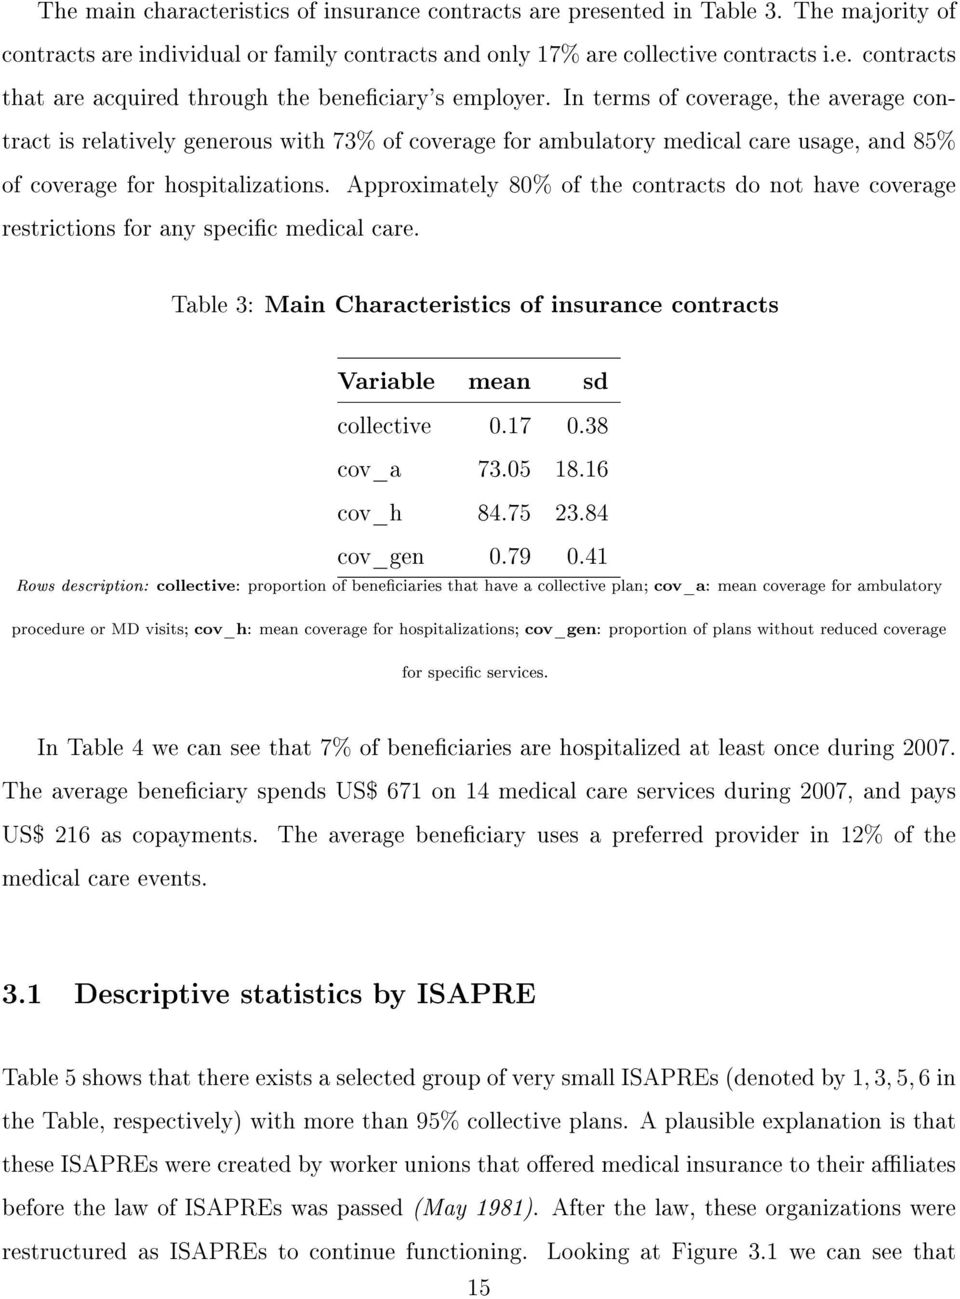 Approximately 80% of the contracts do not have coverage restrictions for any specic medical care. Table 3: Main Characteristics of insurance contracts Variable mean sd collective 0.17 0.38 cov_a 73.